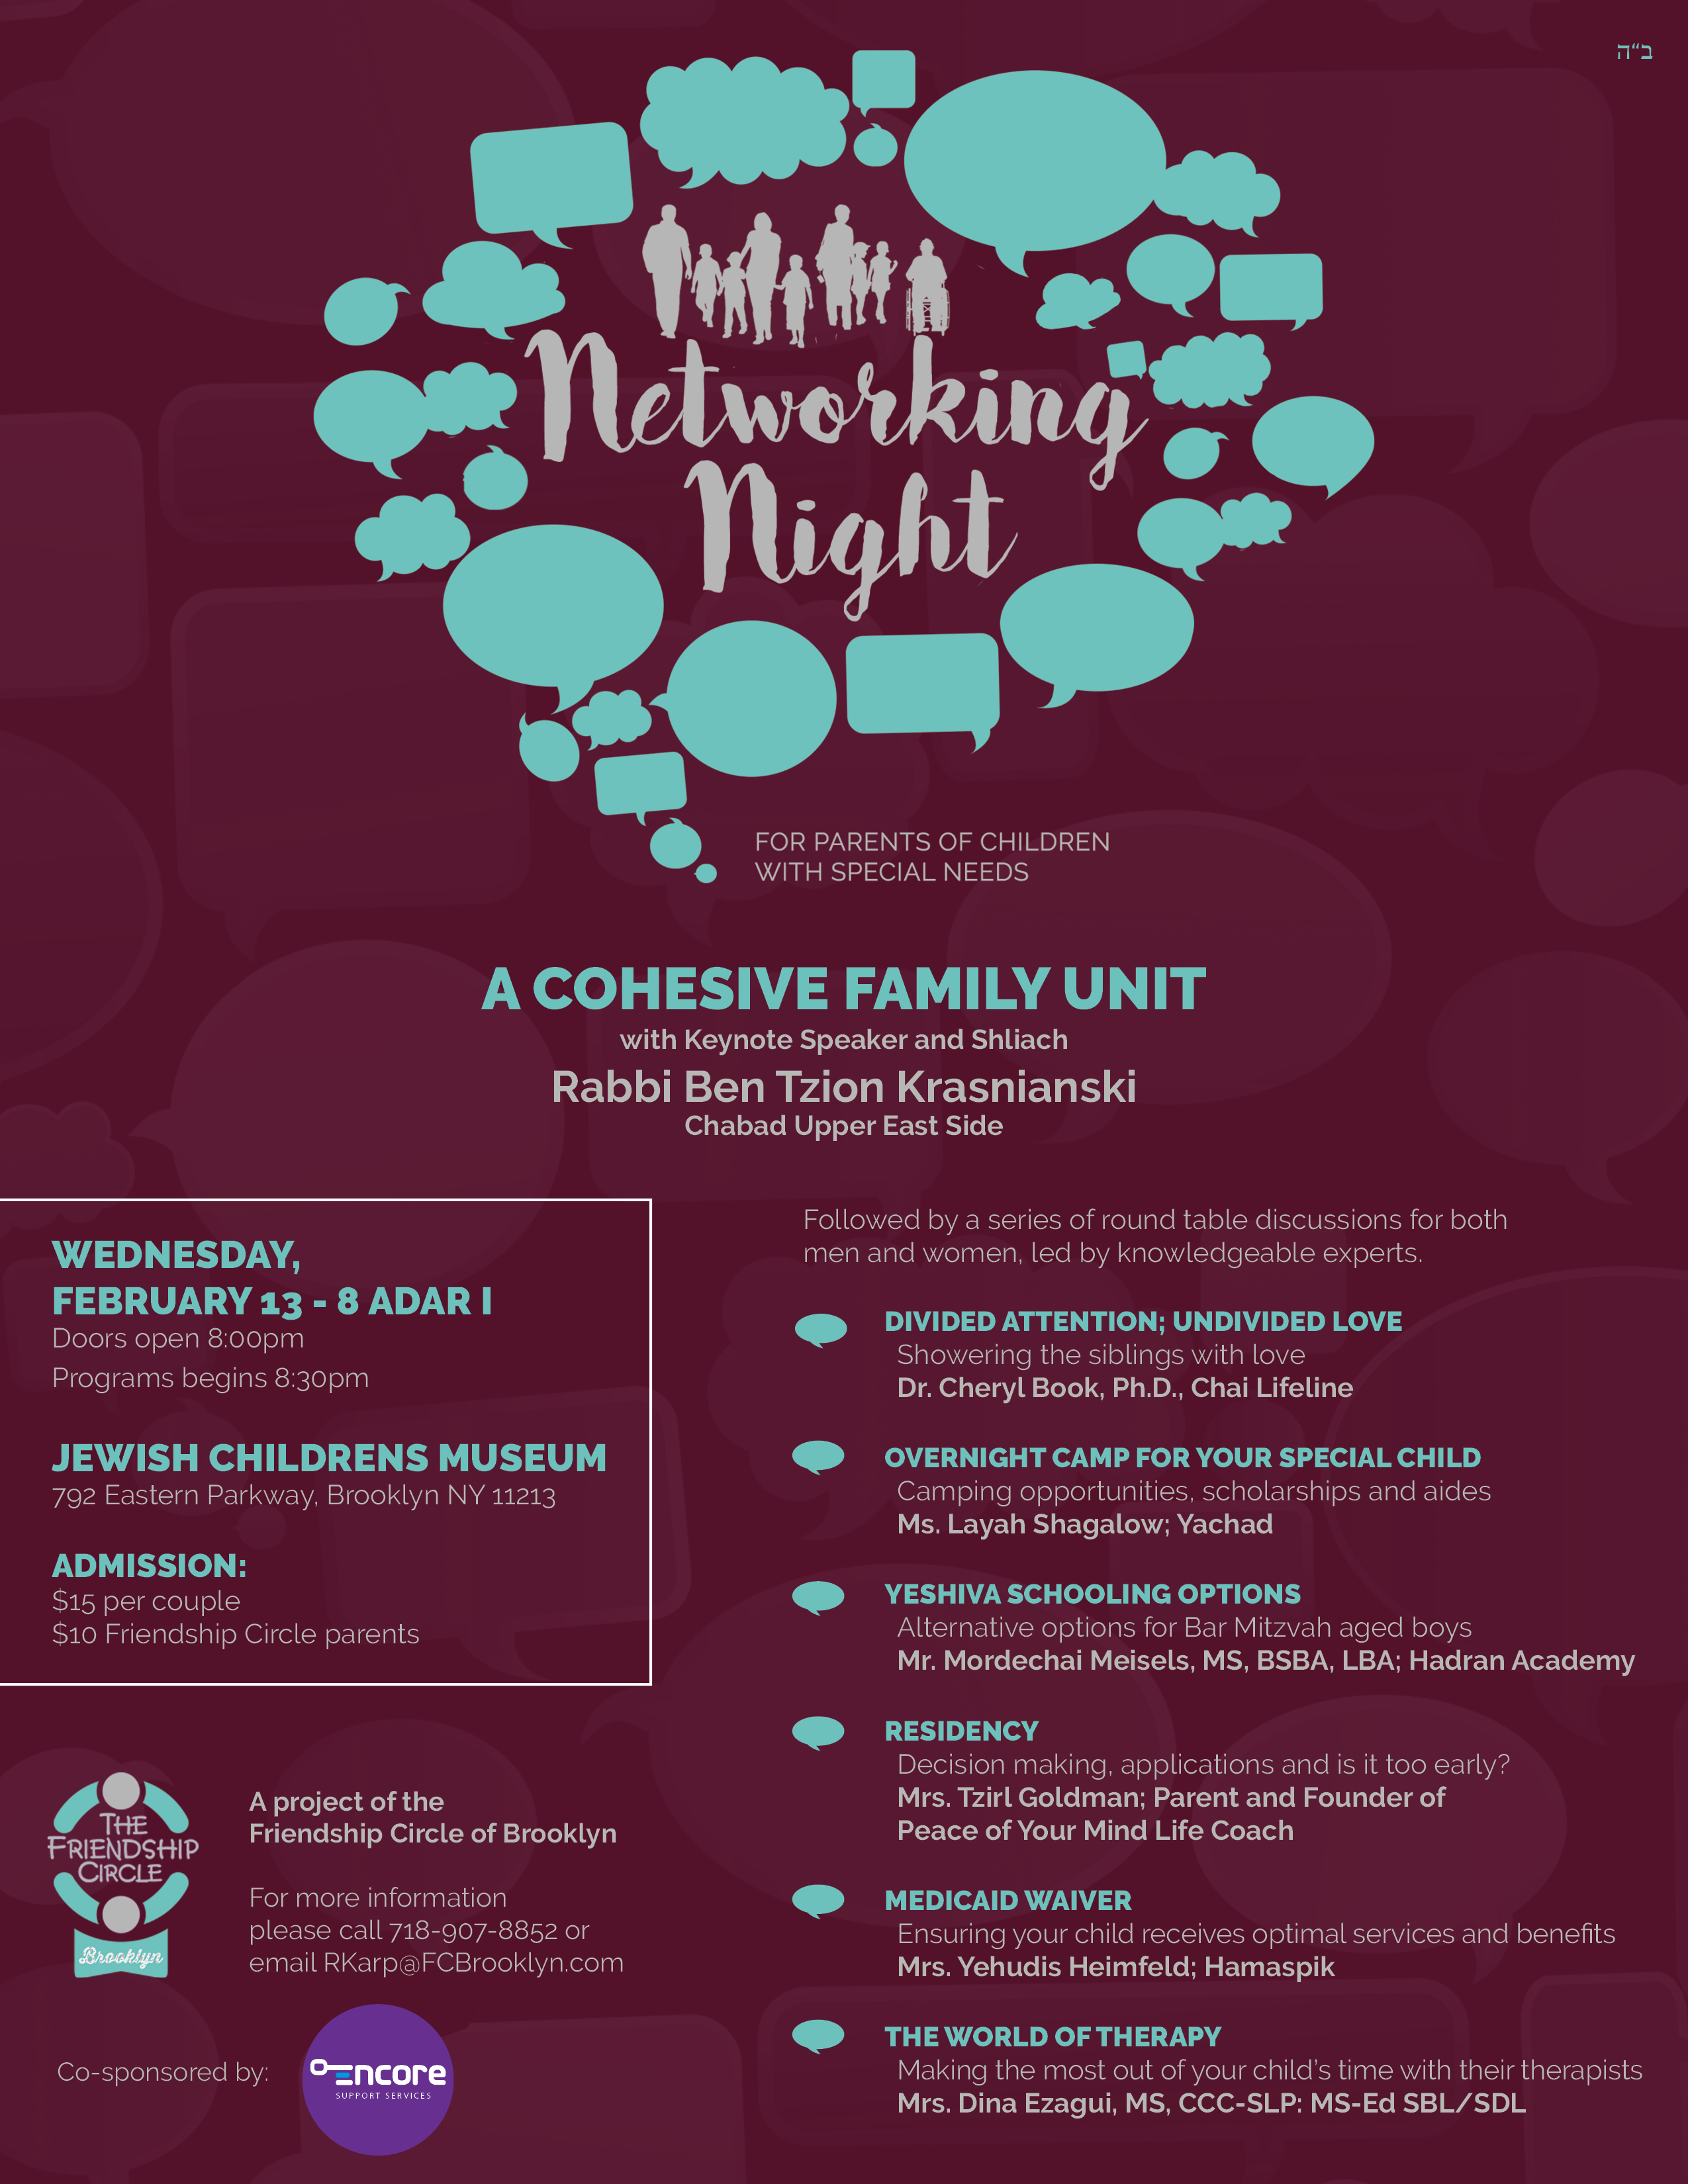 Networking Event for Parents of Children with Special Needs